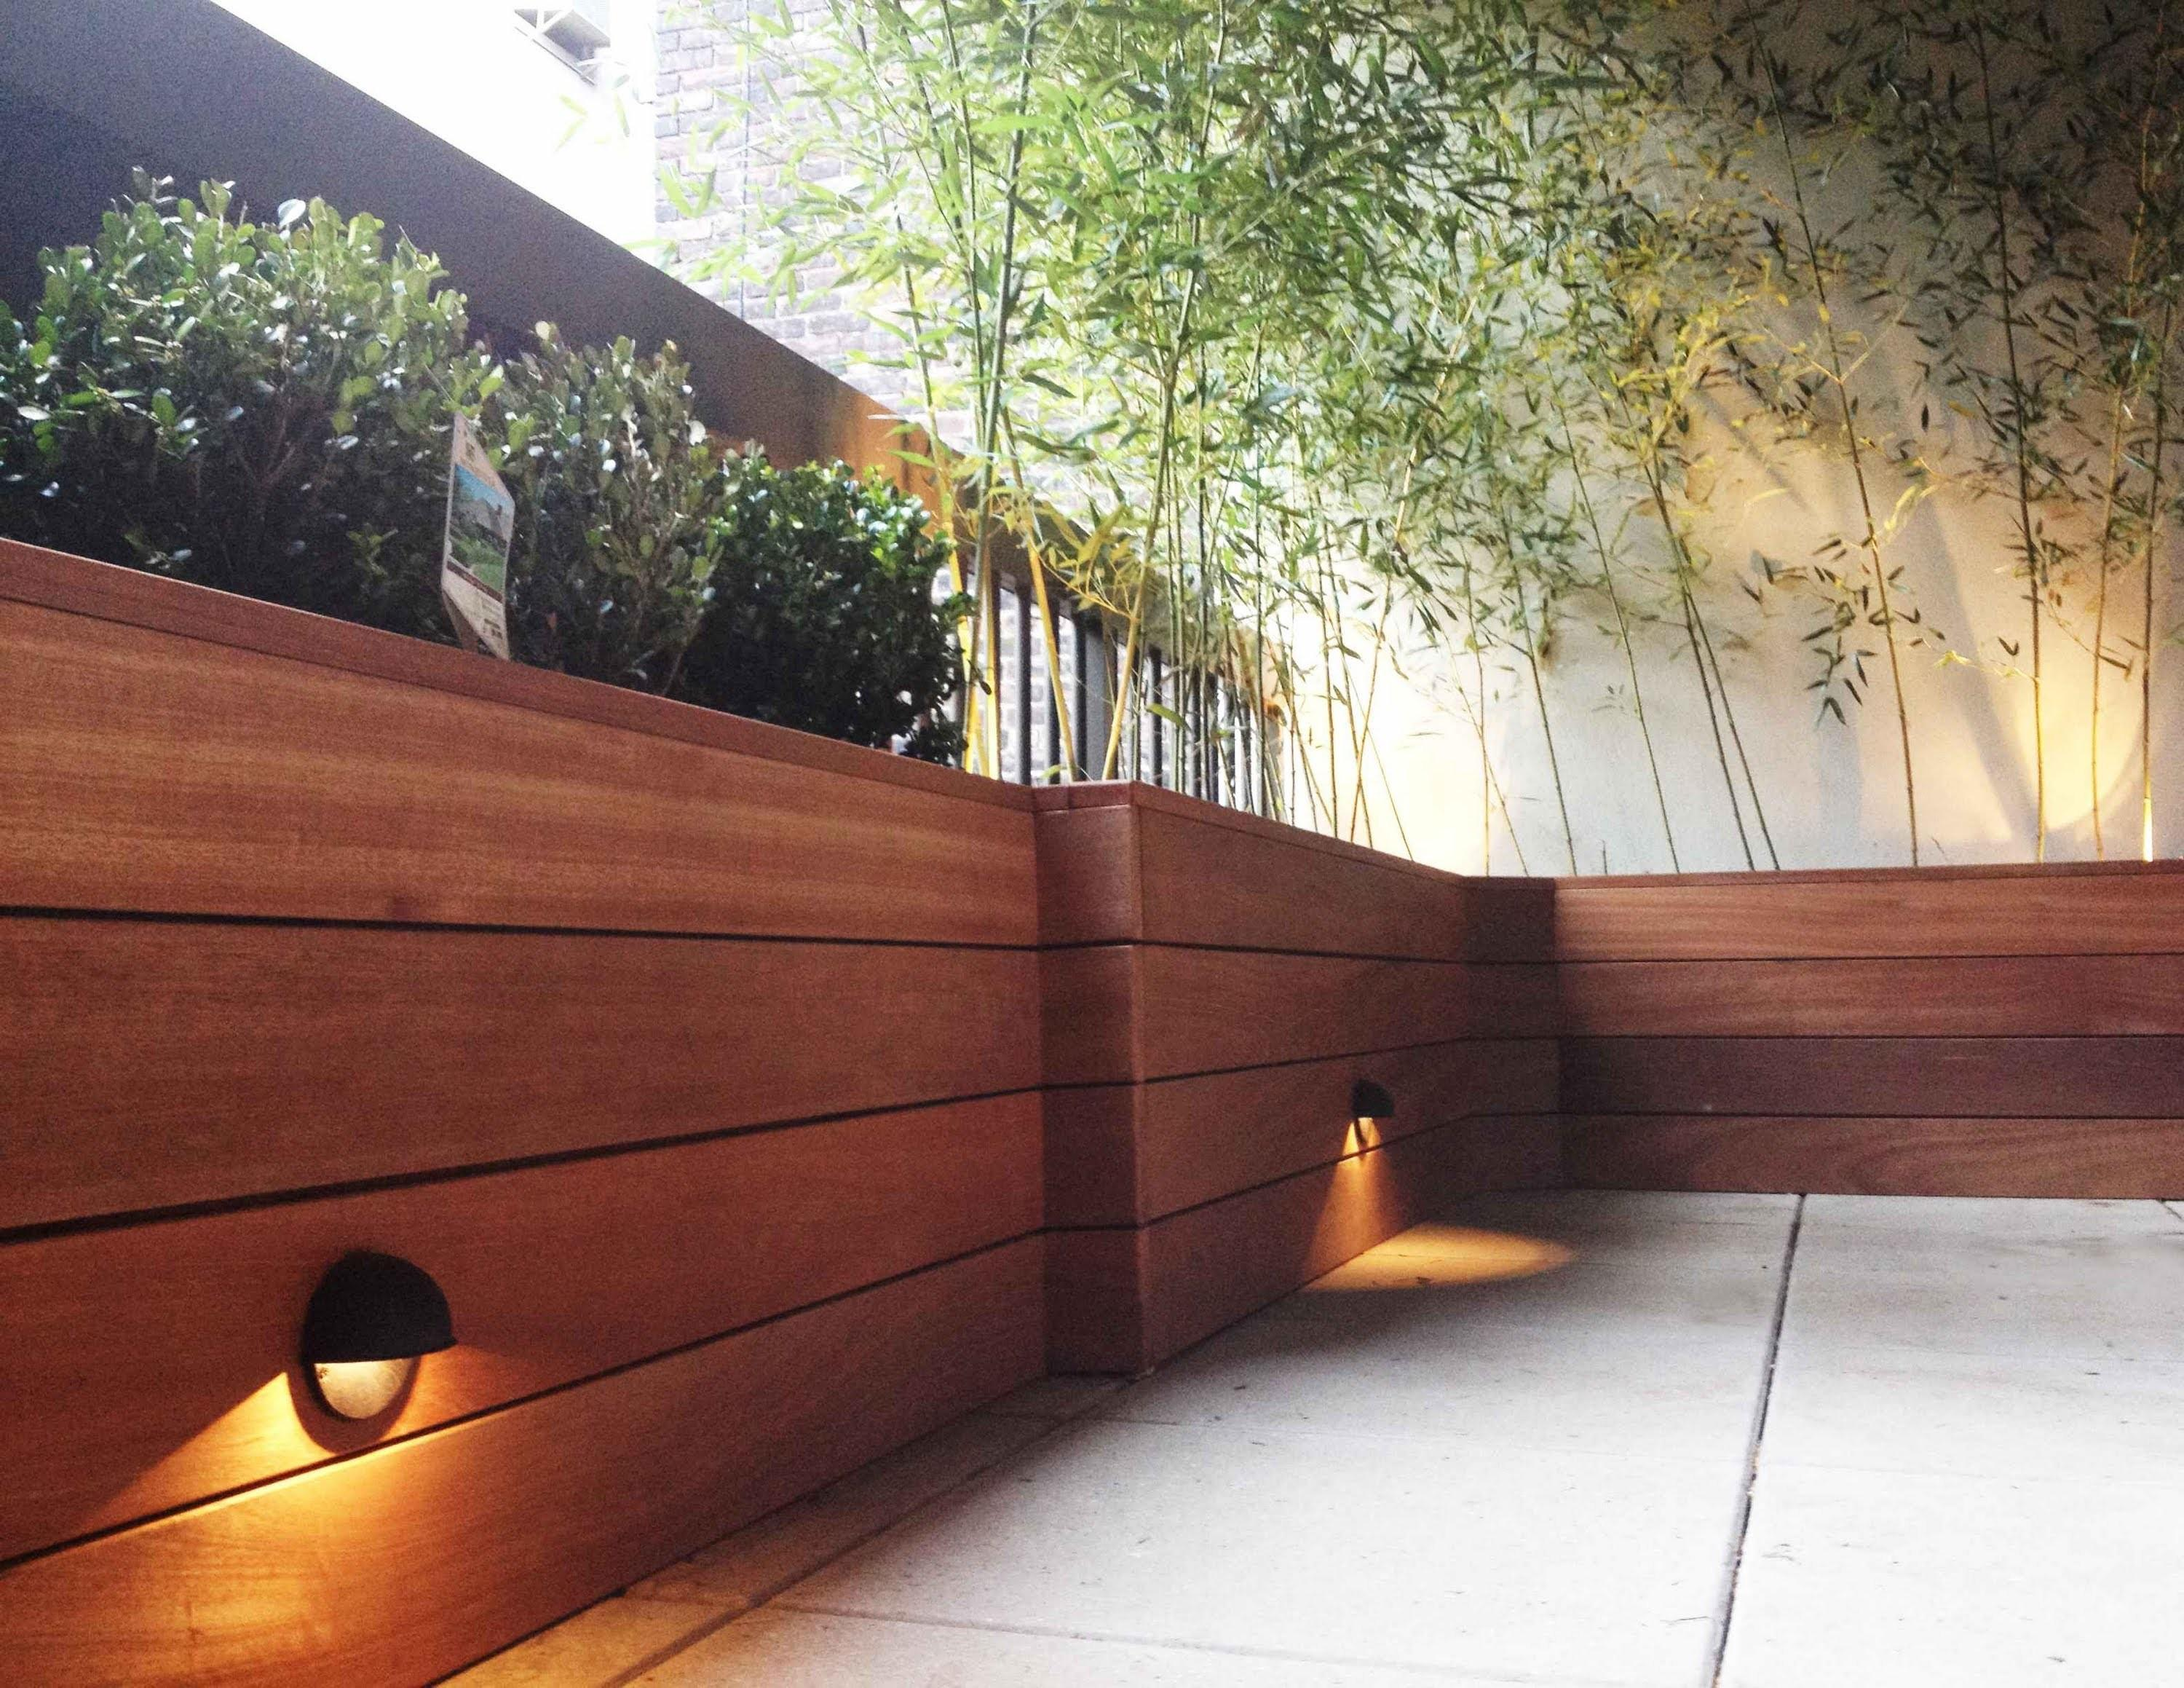 New York Plantings Helps Turn Stale Terrace